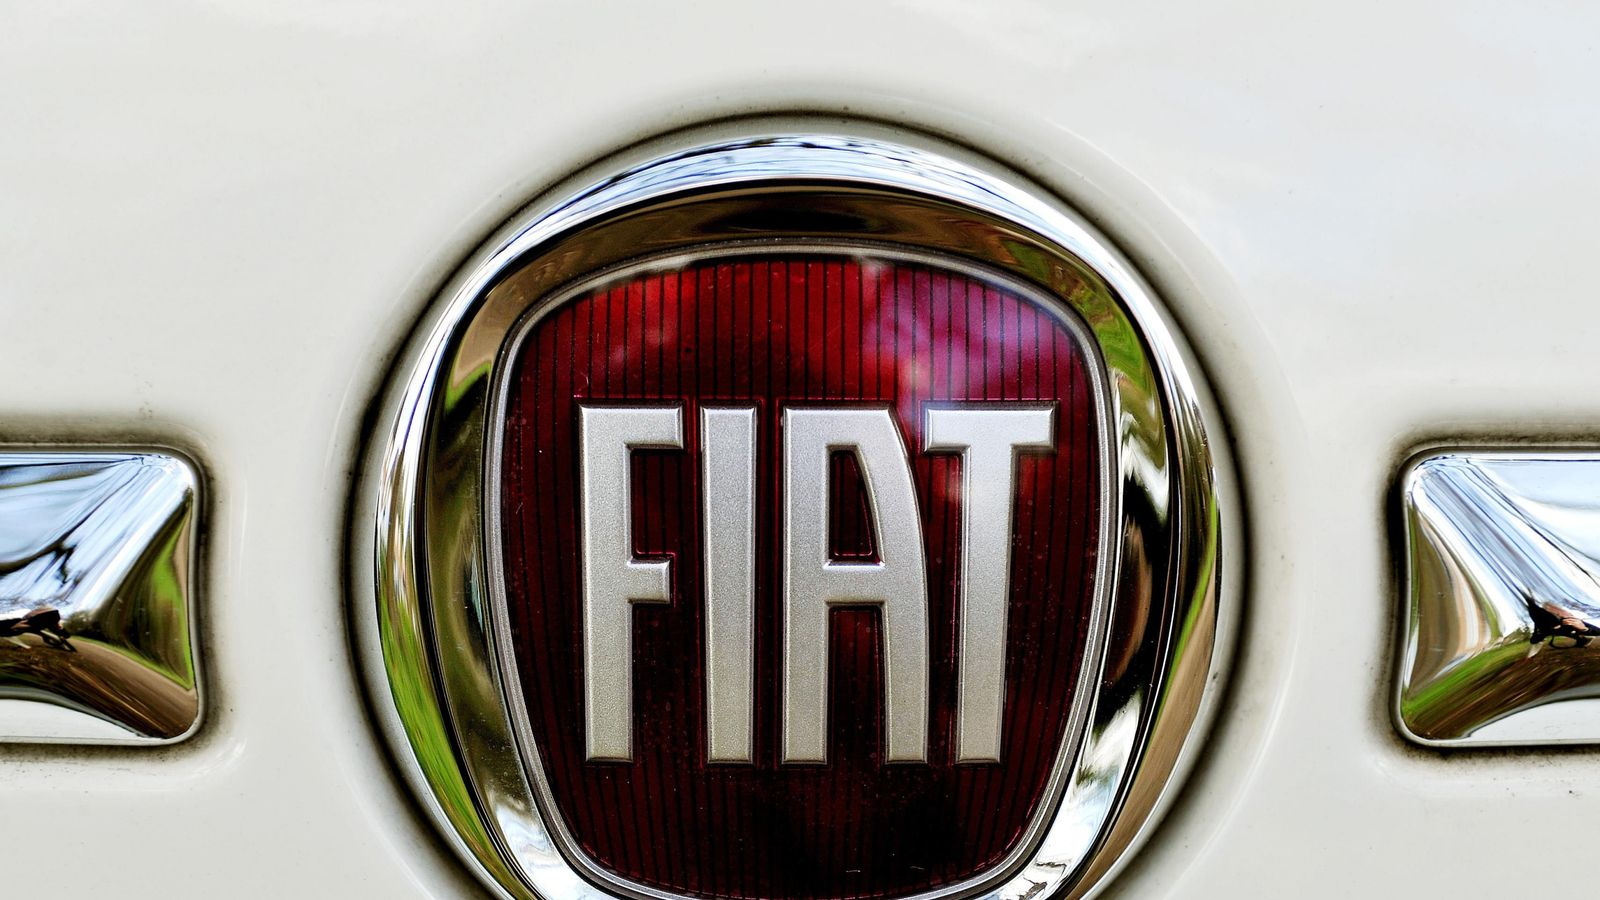 $50bn tie-up between PSA and Fiat Chrysler faces in-depth EU probe | Business News